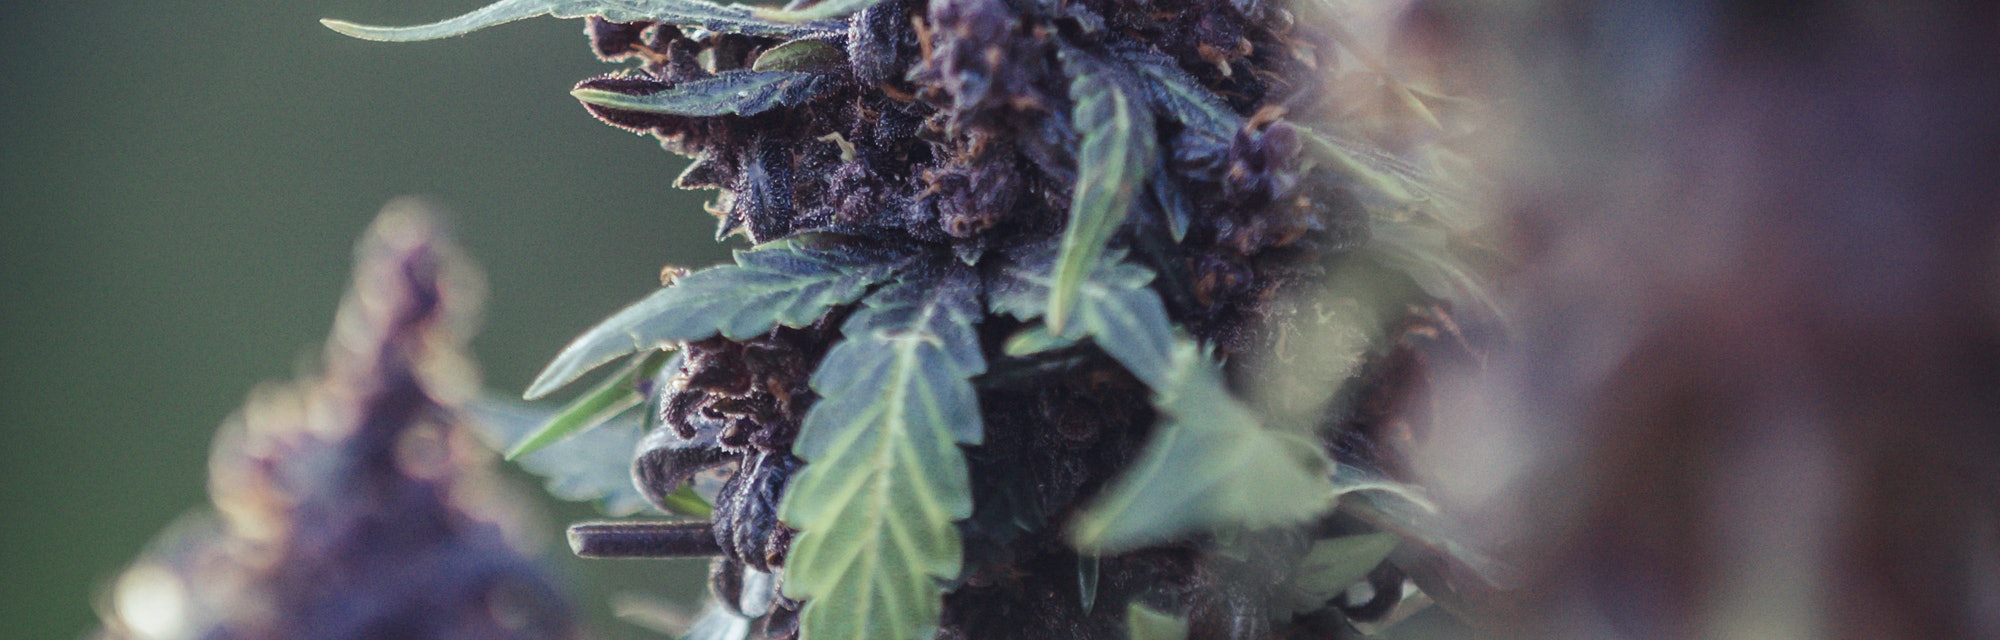 Cannabis flowers and seeds that are ready to harvest Modern medical marijuana concept, world marijuana day